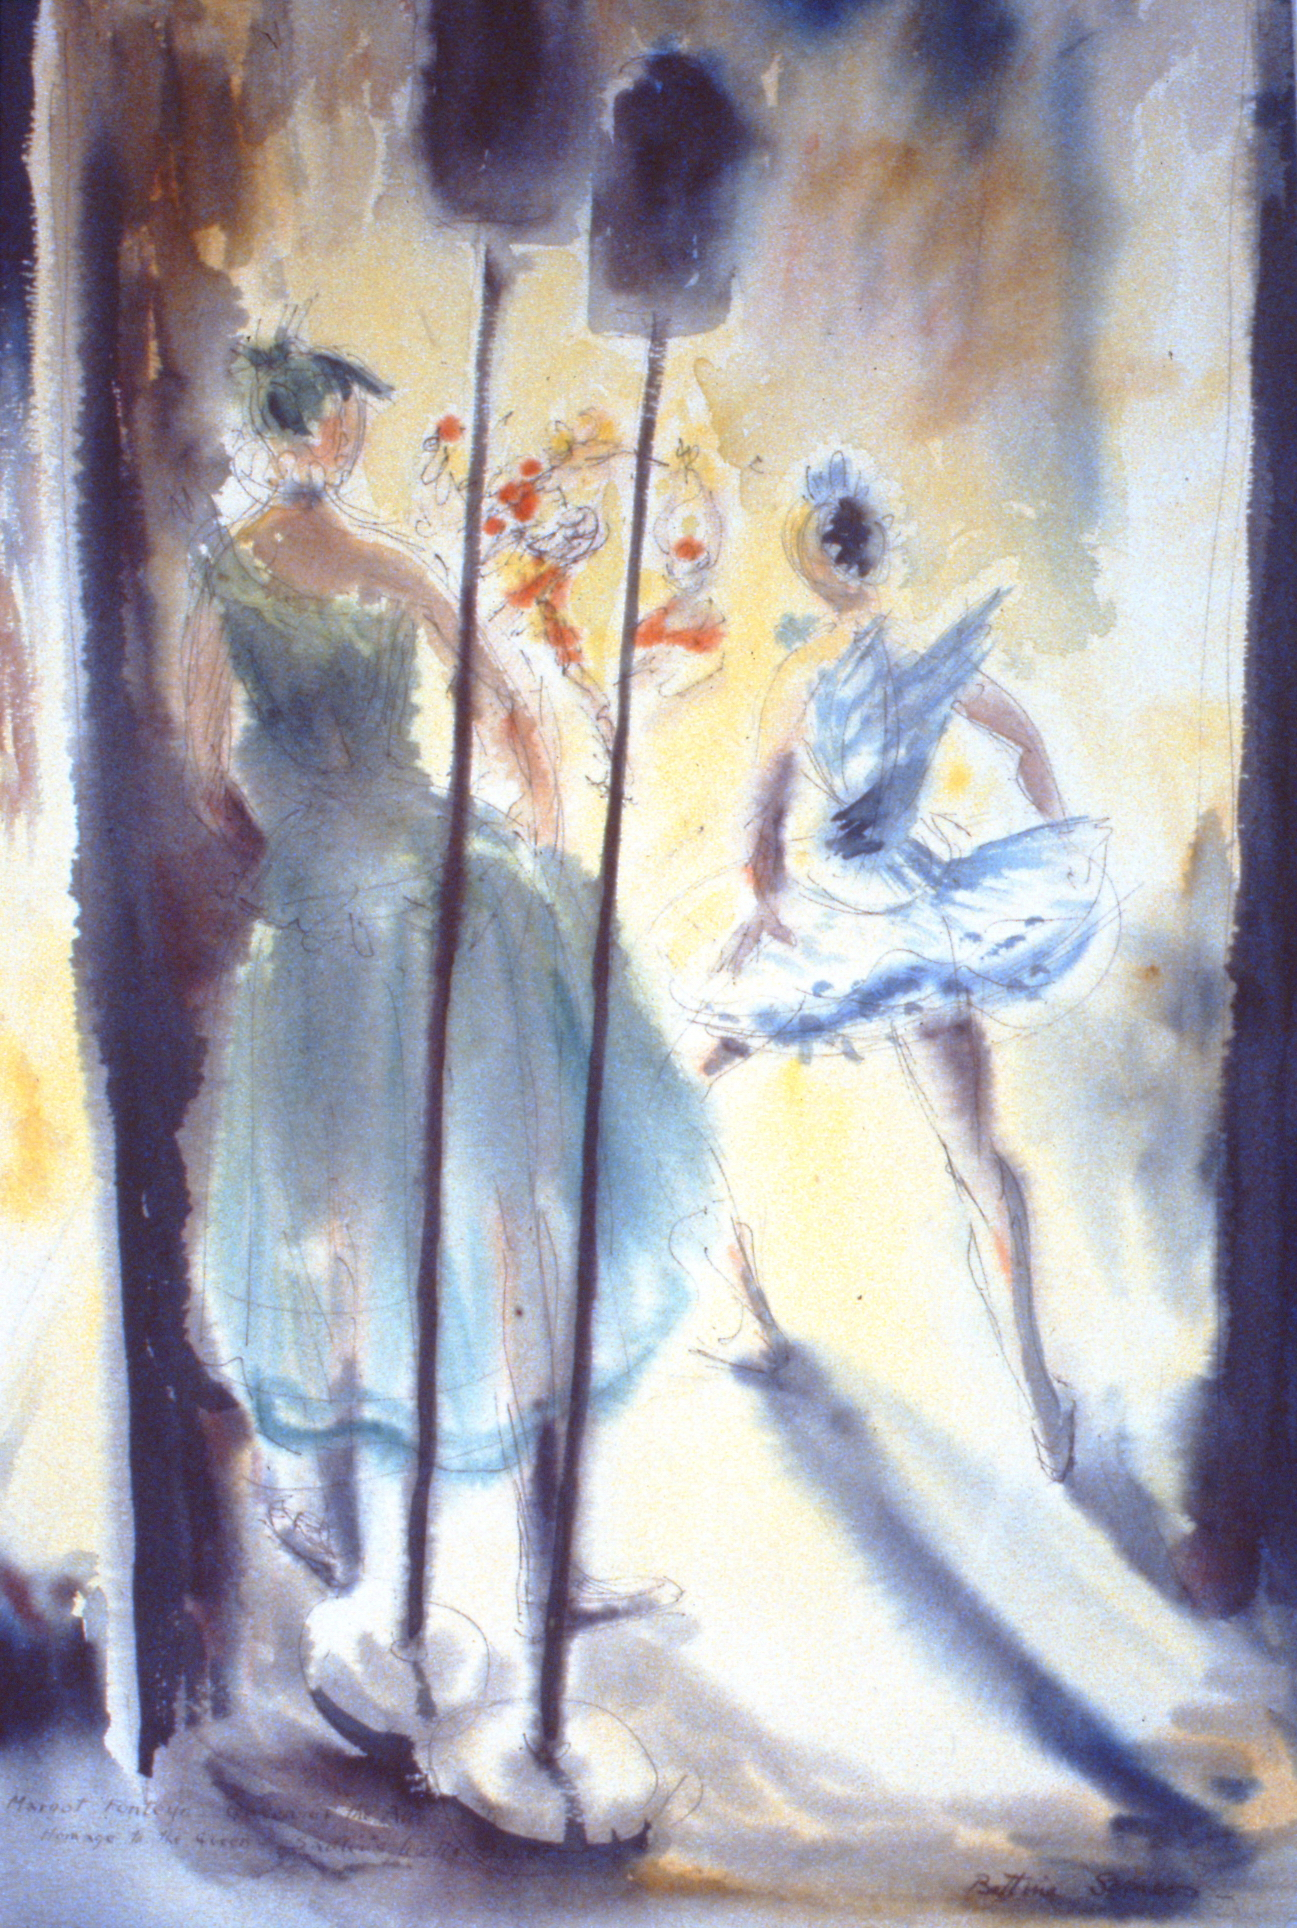 Margot Fonteyn (Homage to the Queen),  c. 1953,Bettina Somers, watercolour and ink on paper, 58 x 39 cm, 1990.01.02. Gift of the artists' estatec/o Mike & Gwen Calverley.